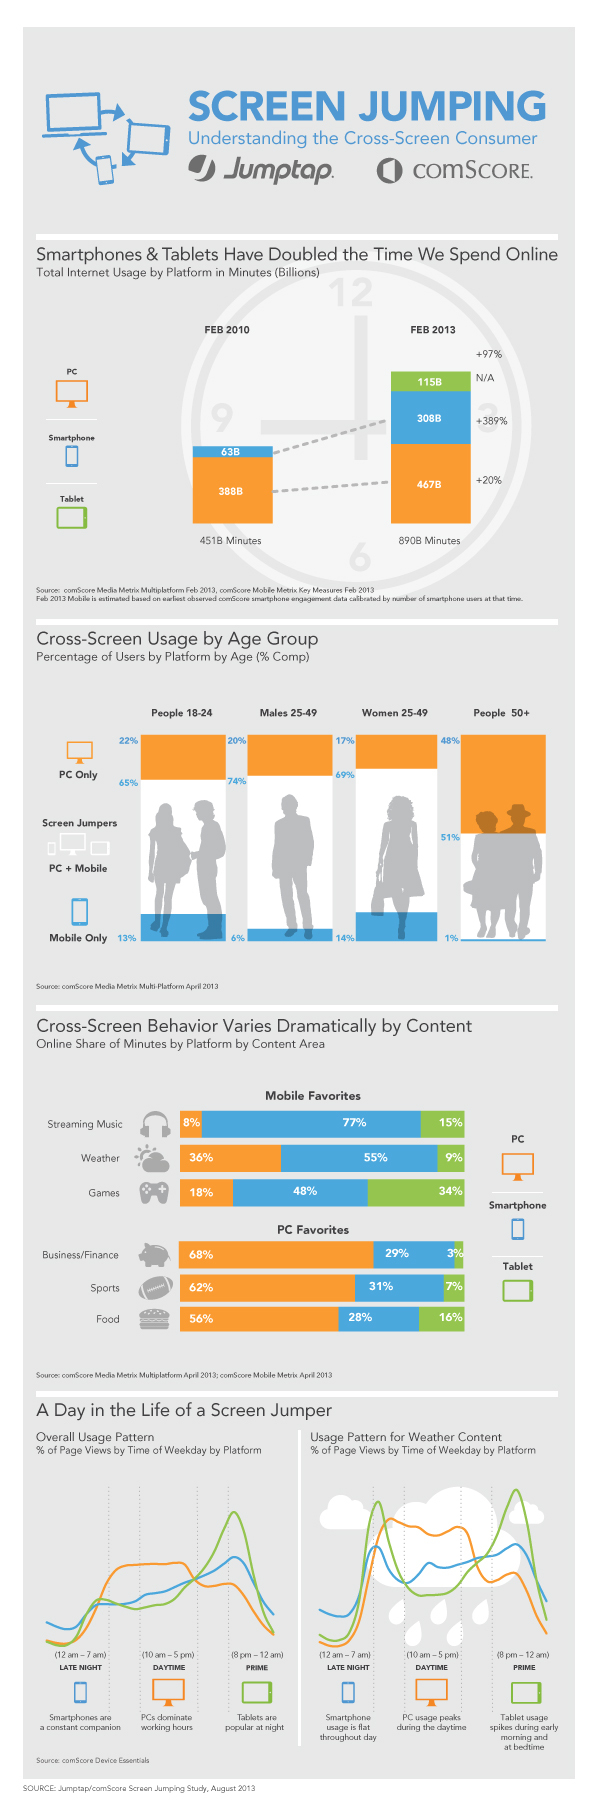 Jumptap.comScore_Screen_Jumping_Study_Infographic